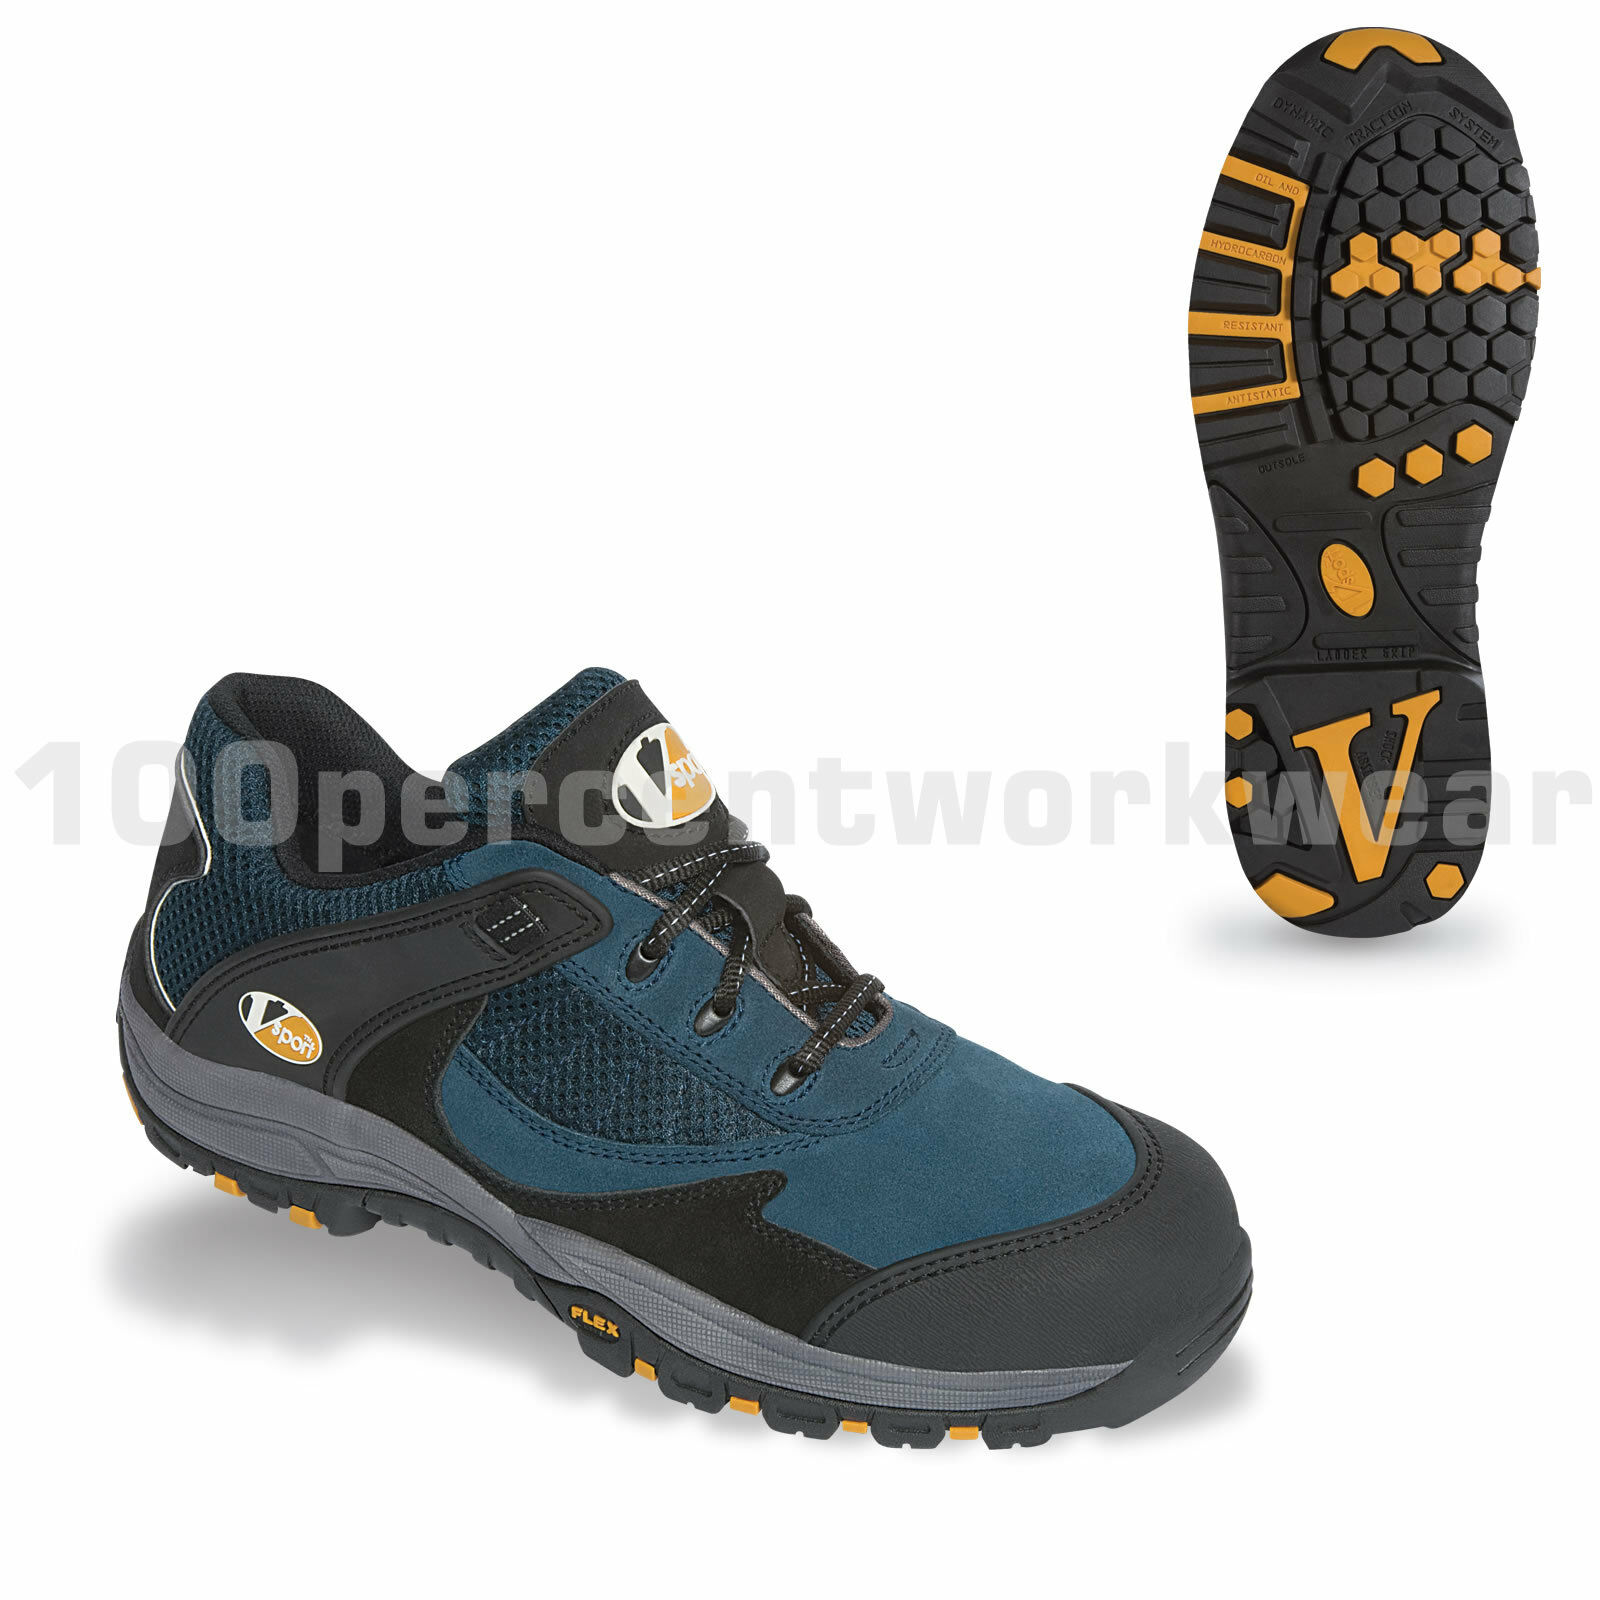 V12 Vtech Safety VS400 PITSTOP Work Trainers Schuhes Blau Free Suede Toe Cap Metal Free Blau 6b04ba